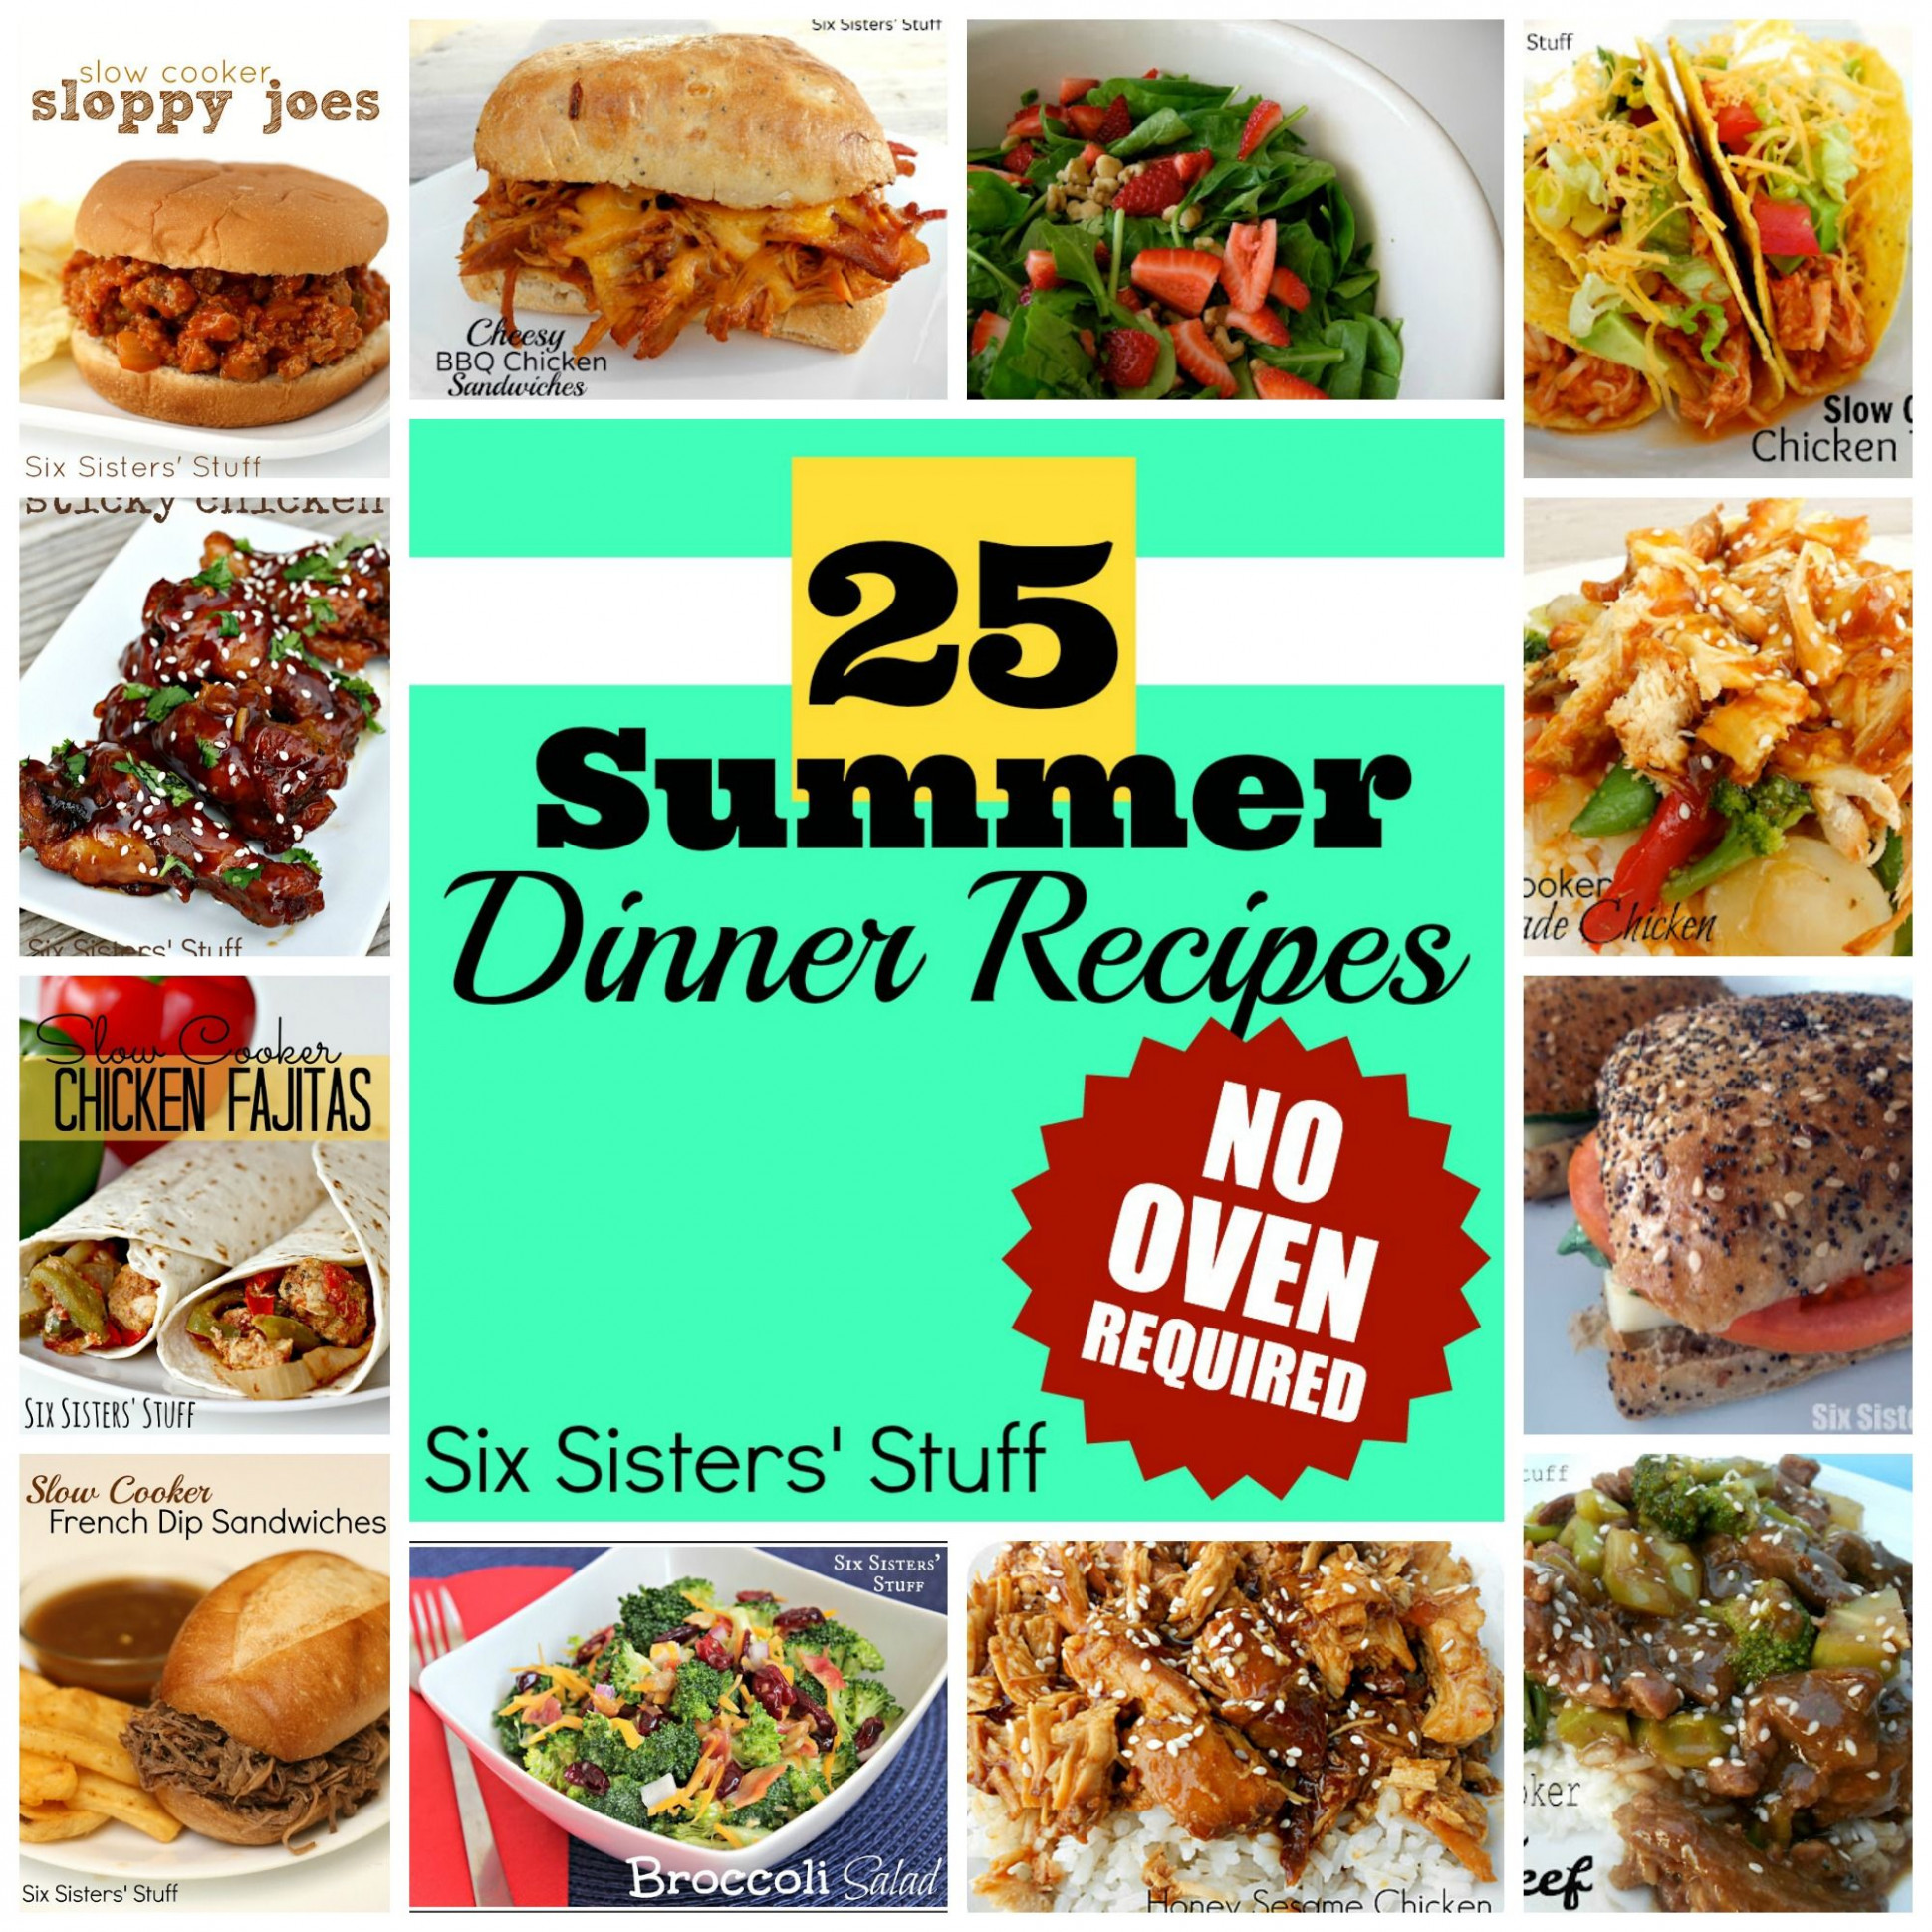 11 Summer Dinner Recipes From SixSistersStuff.com  No Oven ..